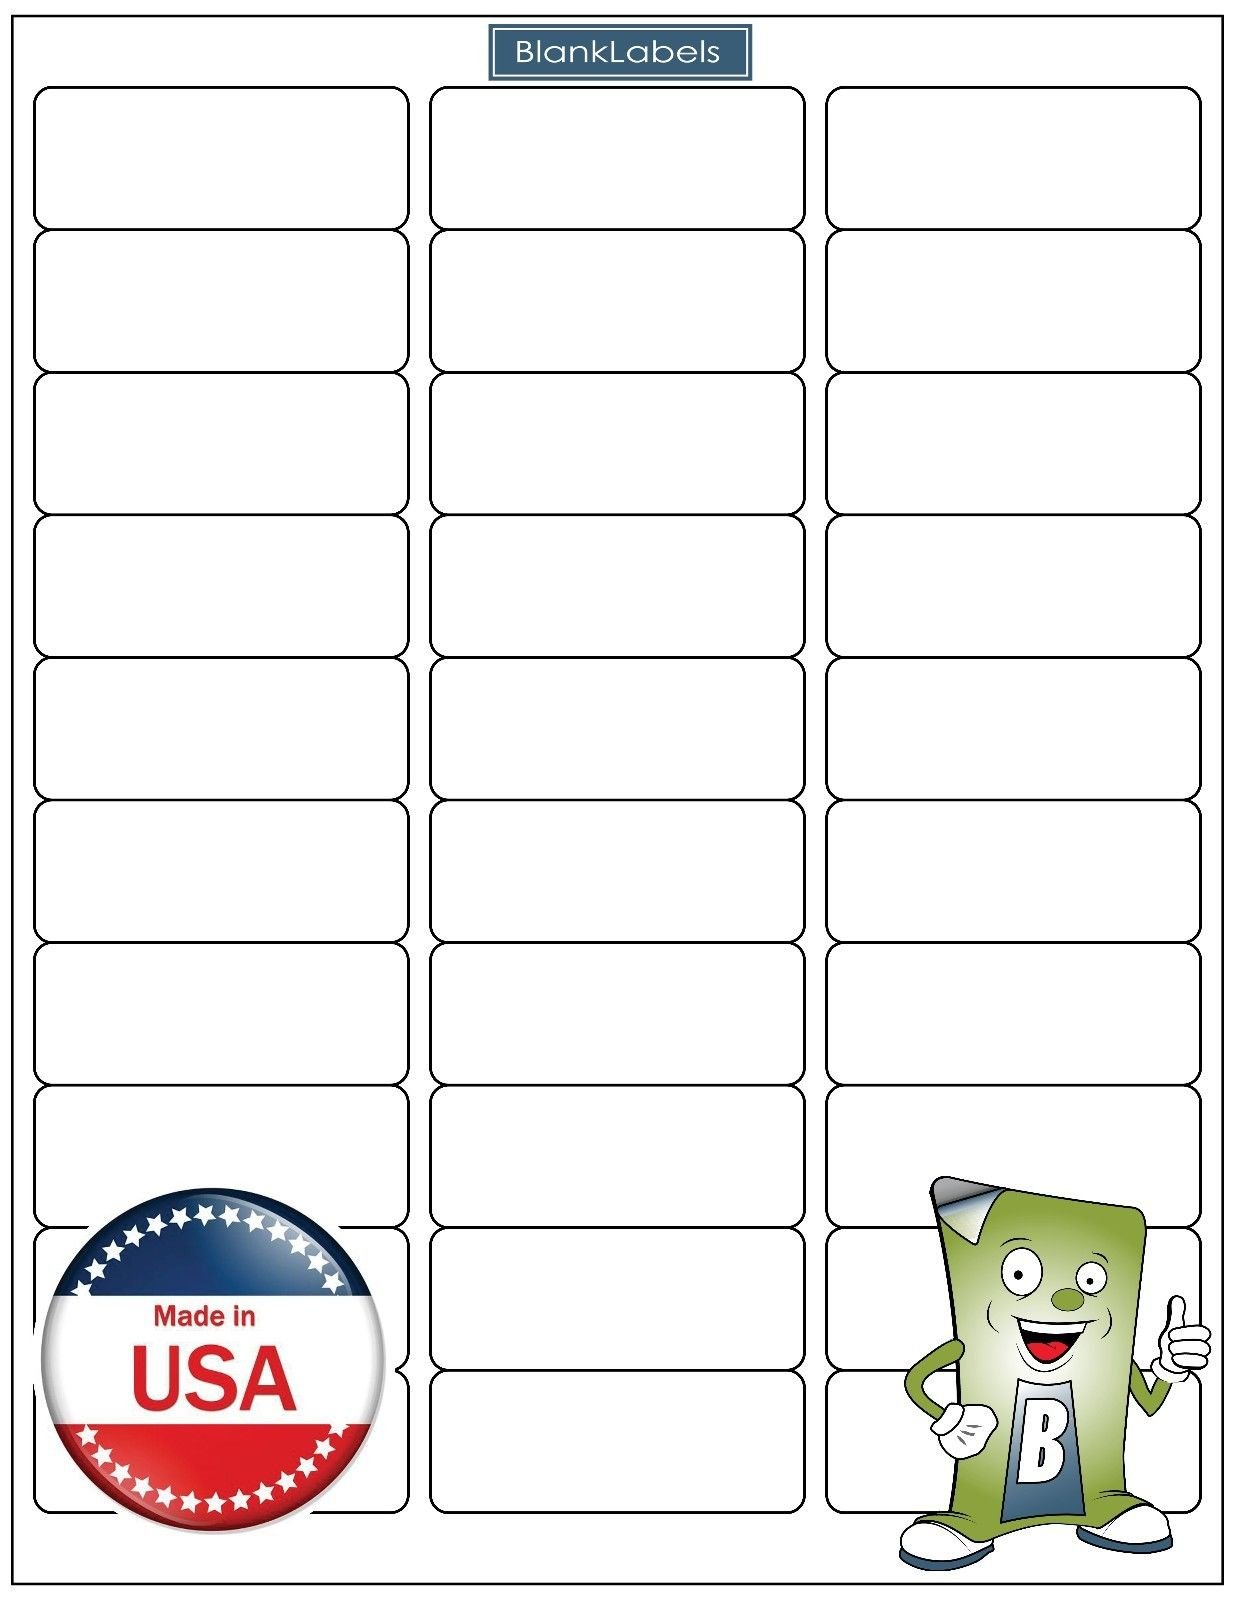 75000 Blank Labels Brand Economy Grade Address Labels. Fits Word Size 2-5/8'' x 1'' (2.625 x 1) Ink Jet and Laser Guaranteed. Made in USA (2500 Sheets)